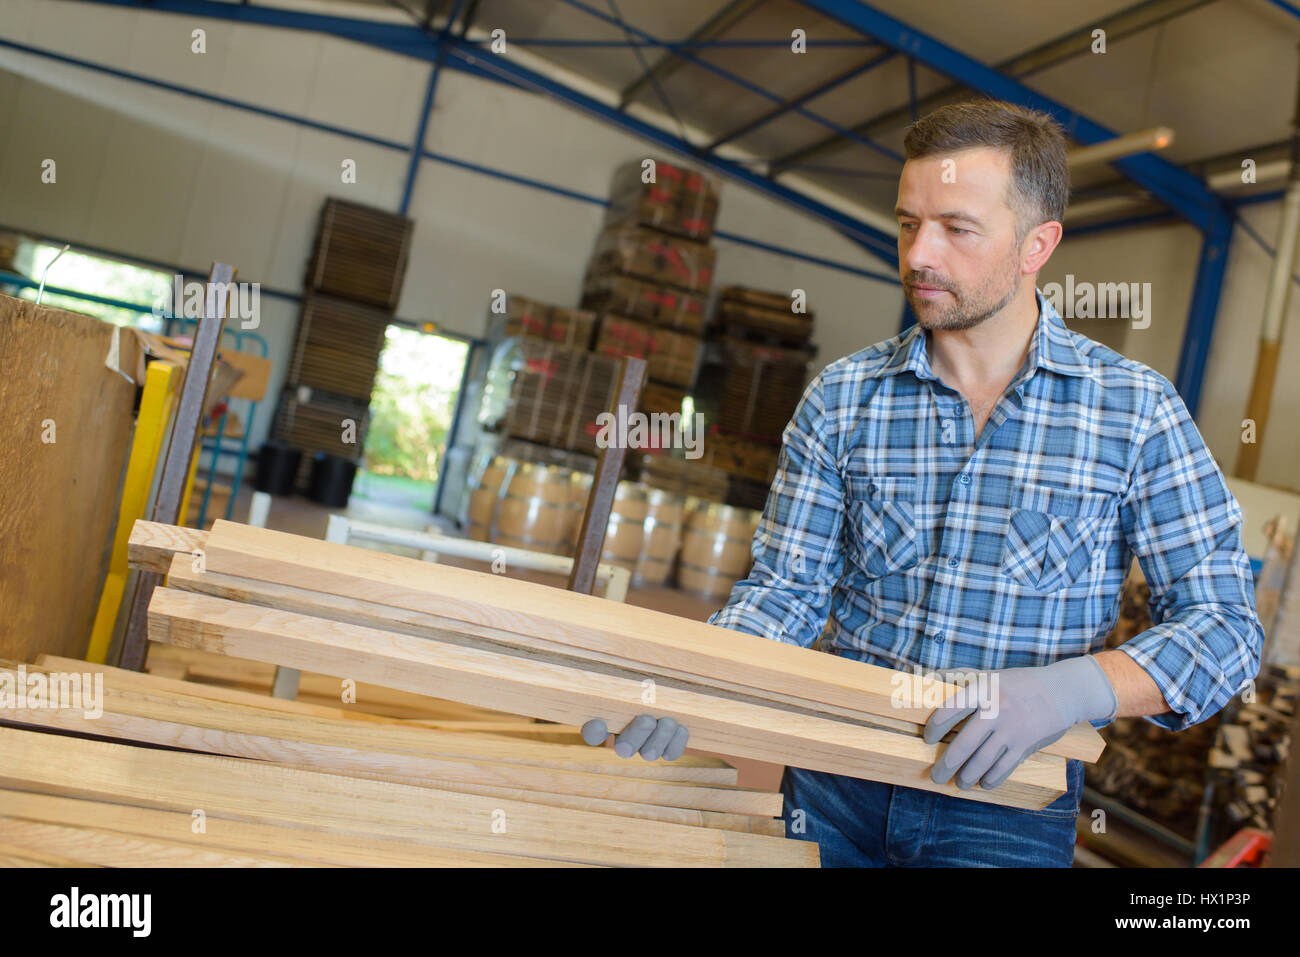 woodworking materials in the workshop - Stock Image